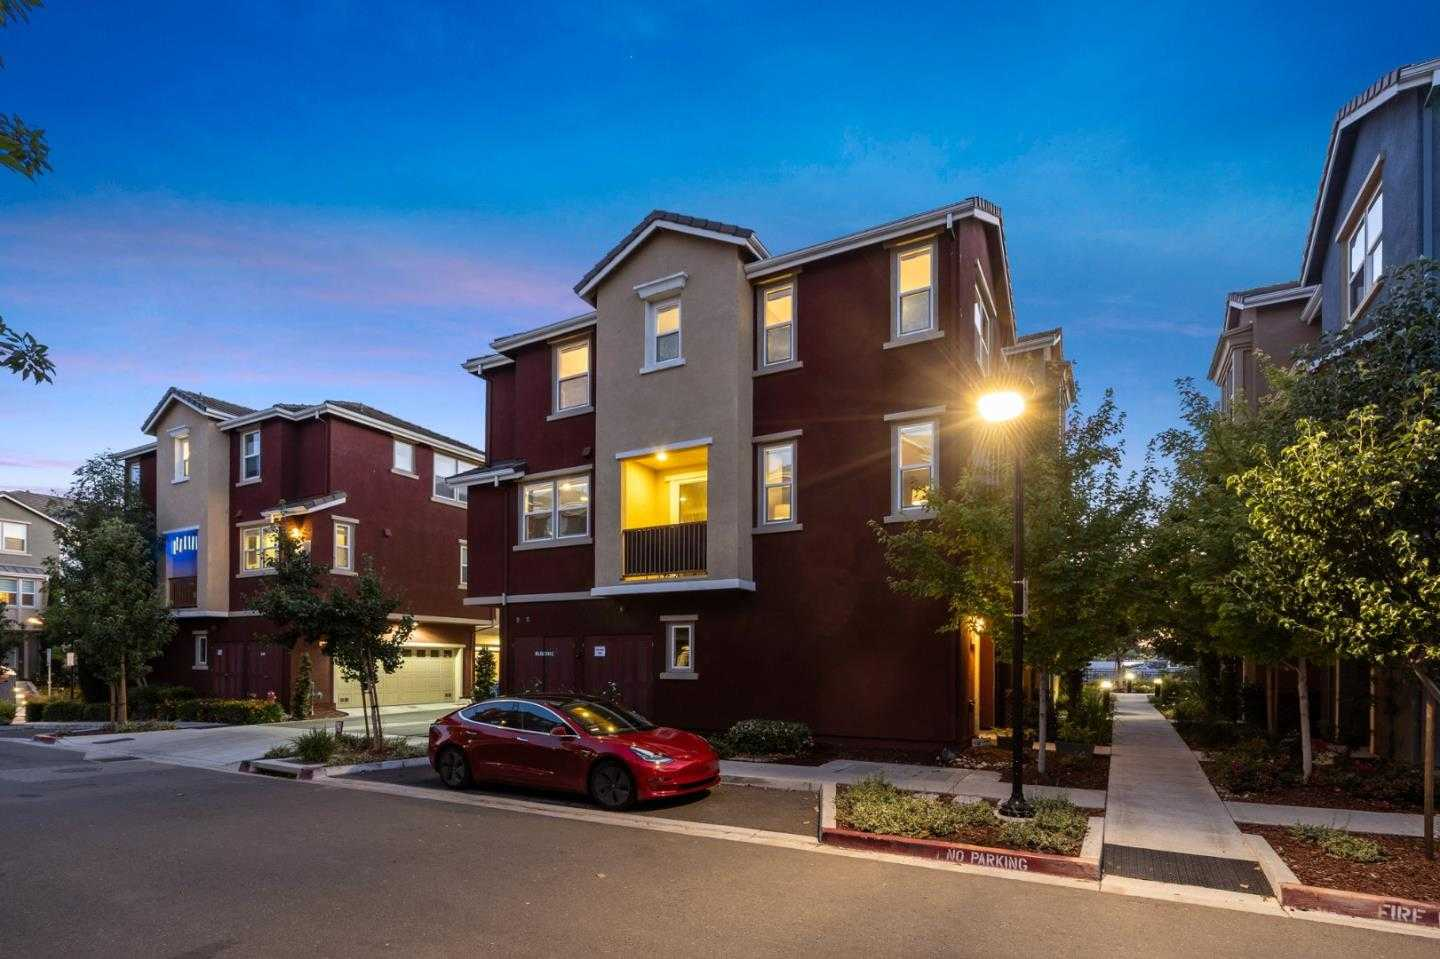 $1,096,000 - 3Br/3Ba -  for Sale in Milpitas